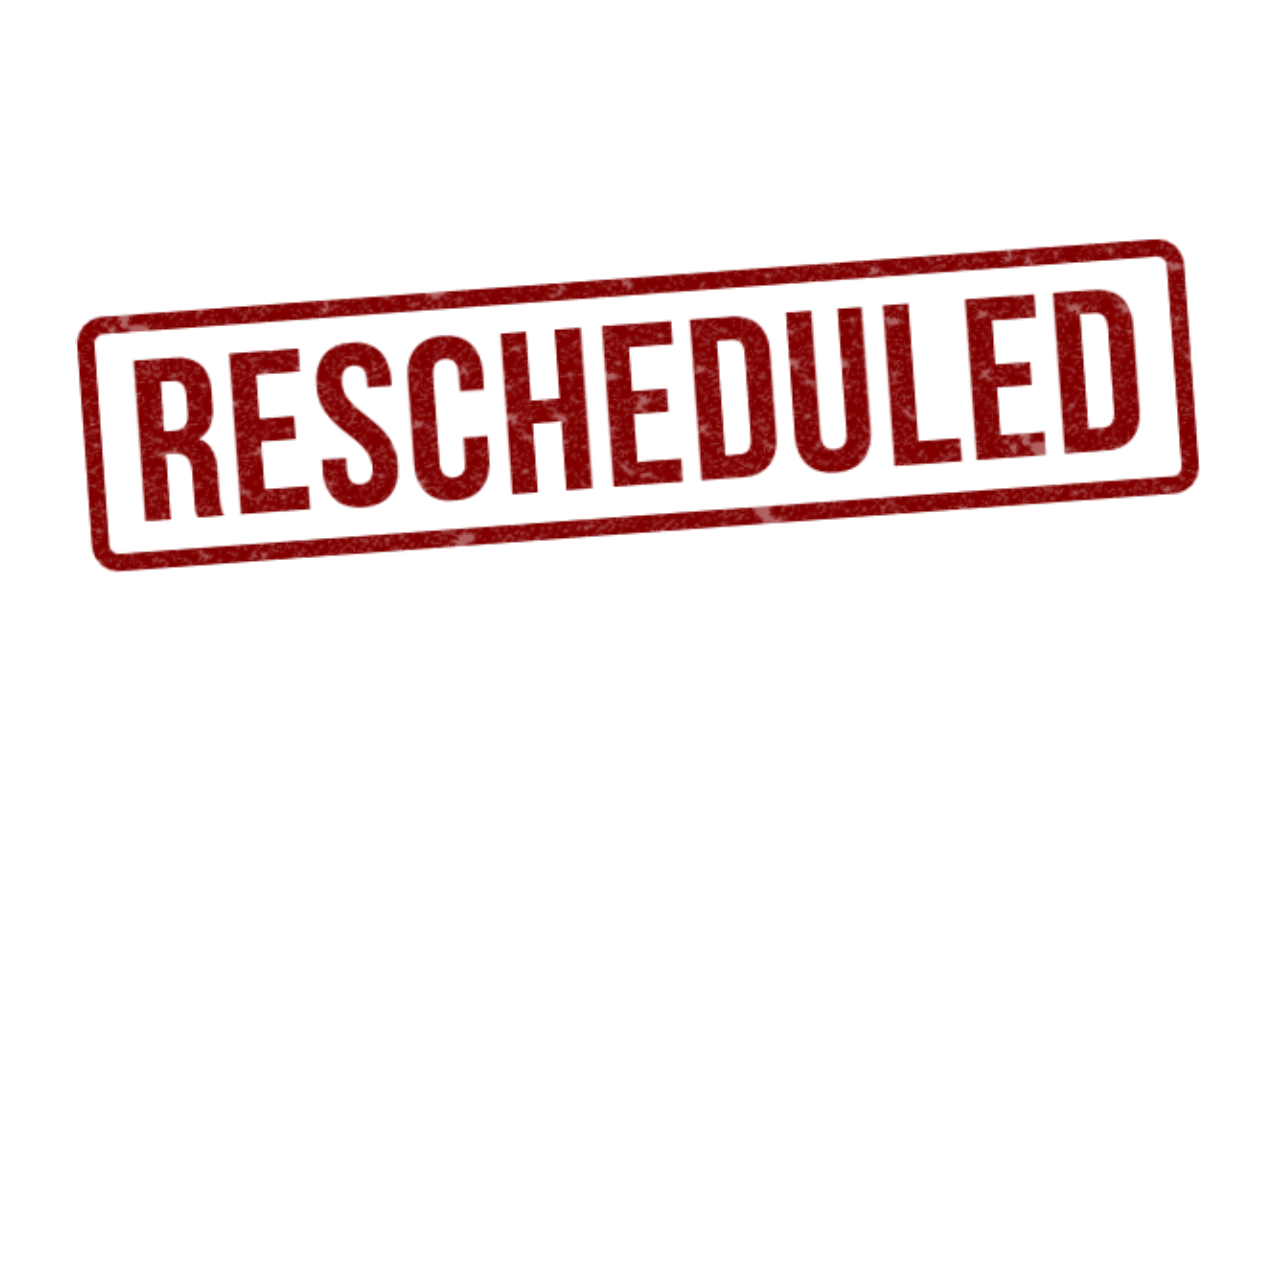 FISHING RODEO RESCHEDULED - IFMA New Orleans Chapter IFMA New ...